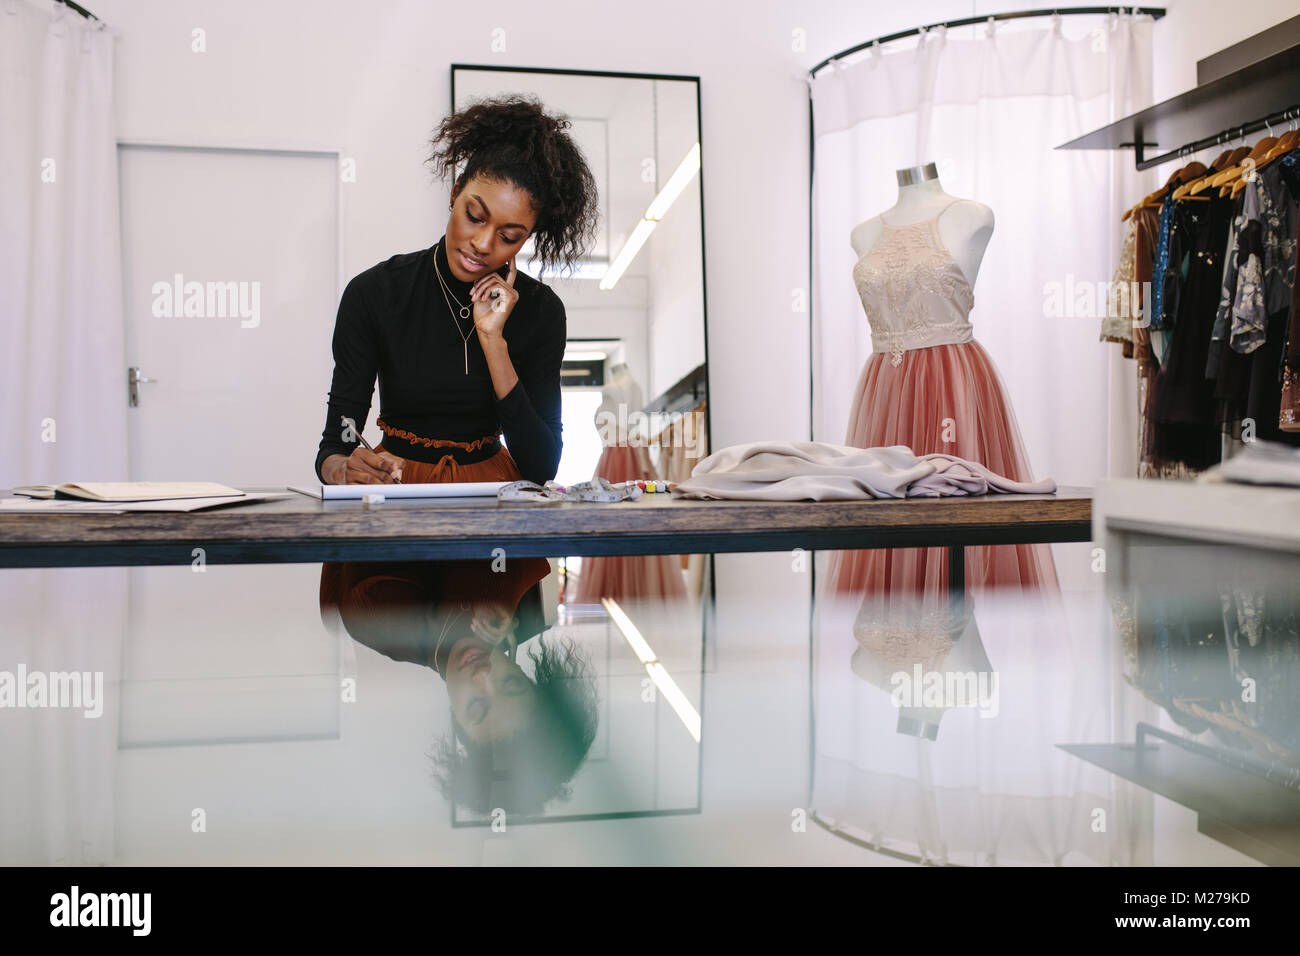 Female fashion designer sketching a design sitting at her table. Fashion entrepreneur engrossed in making a drawing - Stock Image